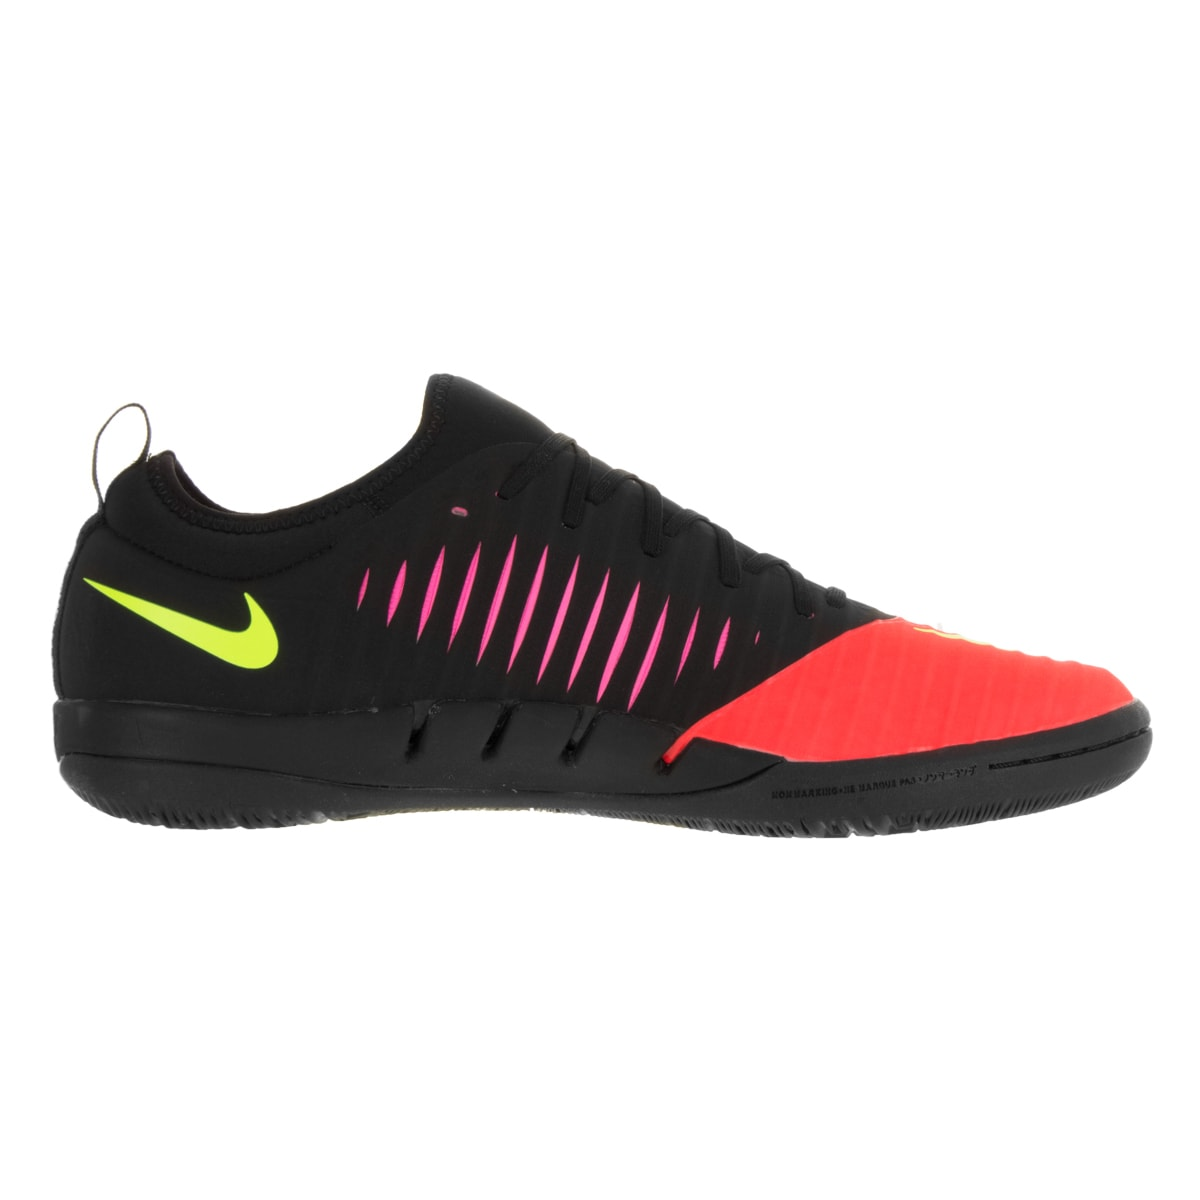 f62a32fb6 Shop Nike Men s Mercurialx Finale II IC Total Crimson Volt Blk Pink Blast  Black Indoor Soccer Shoe - Free Shipping Today - Overstock - 13394570